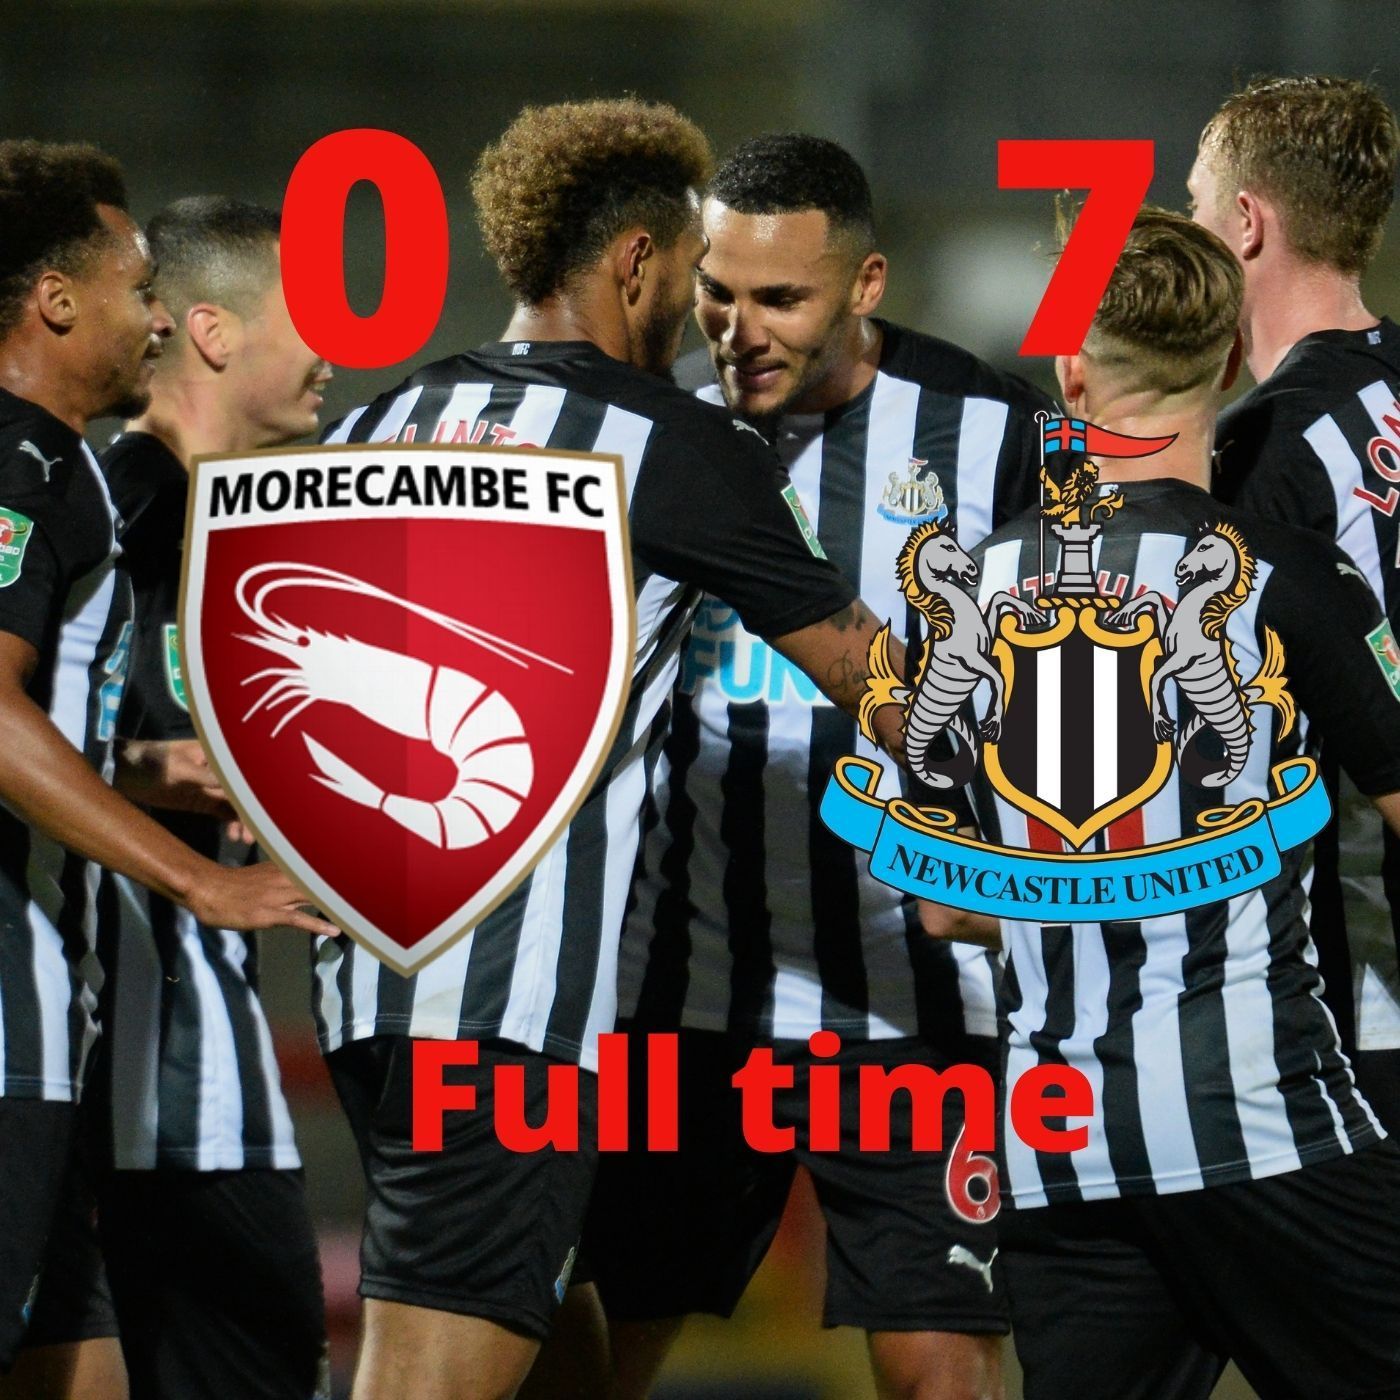 Morecambe 0-7 Newcastle - Magpies run rampant in League Cup tie